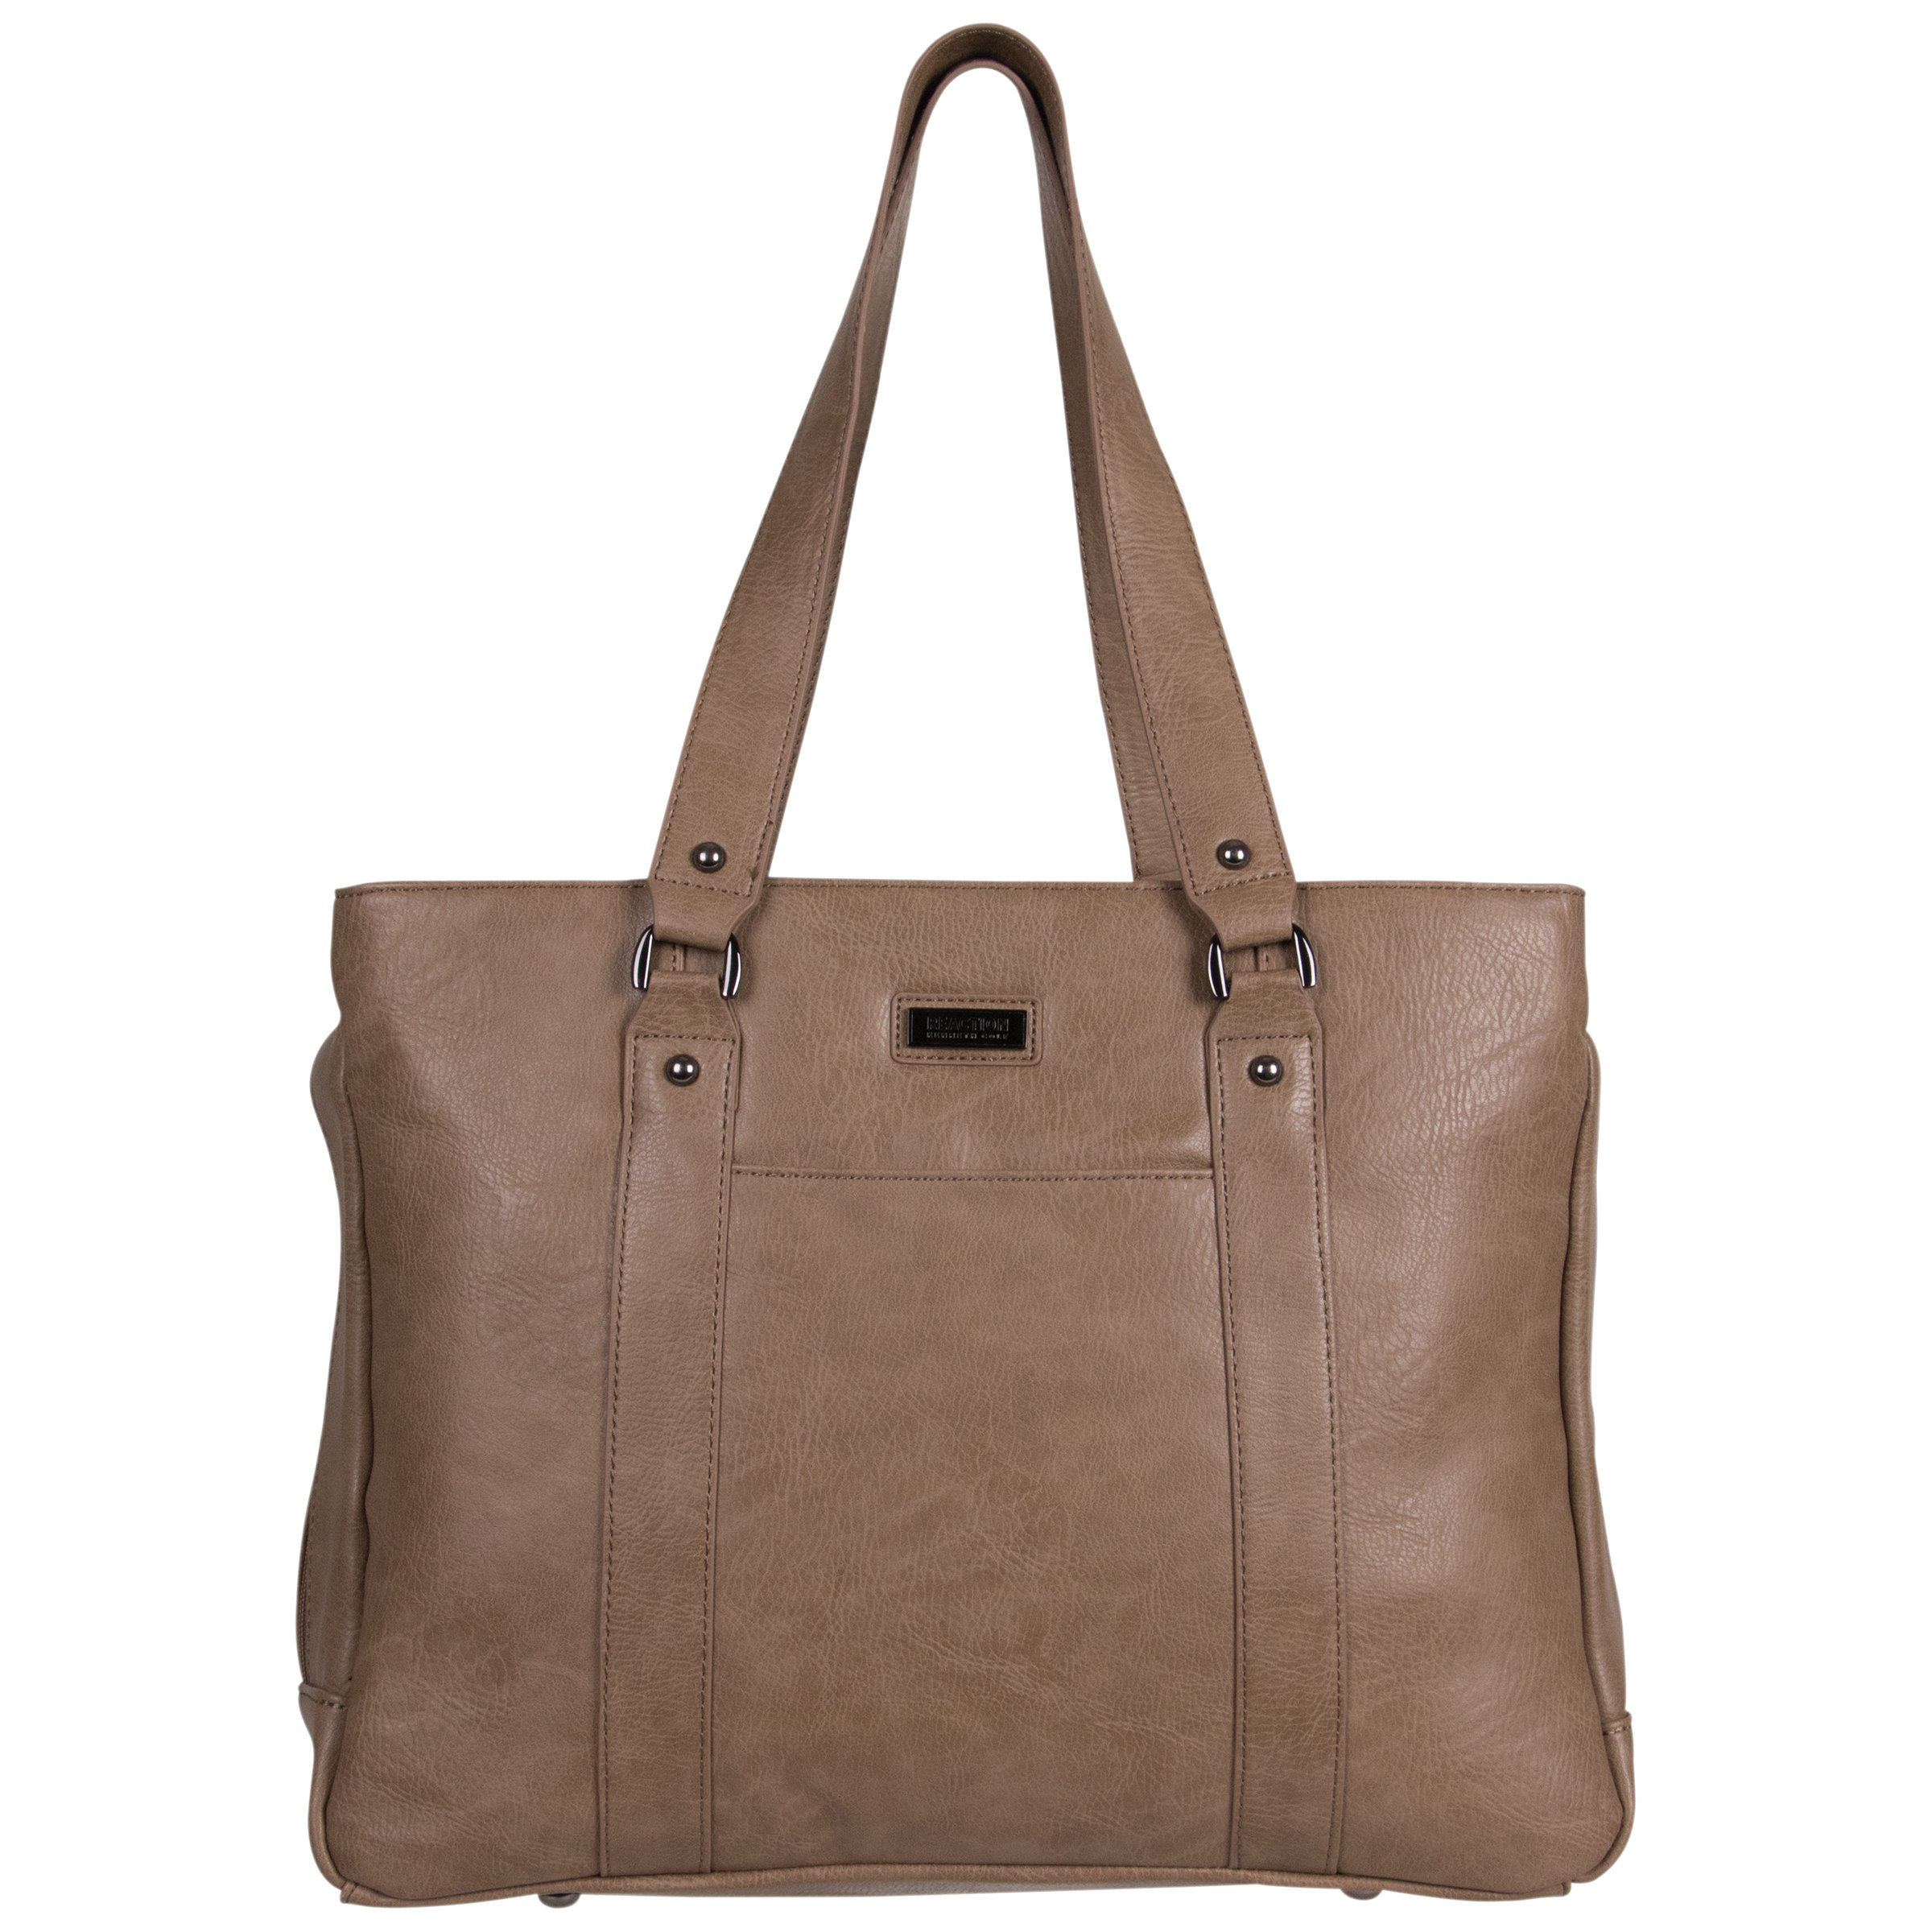 "Kenneth Cole Reaction Women's Faux Leather Triple Compartment Top Zip 15.0"" Computer Business Laptop Tote, Taupe, One Size"